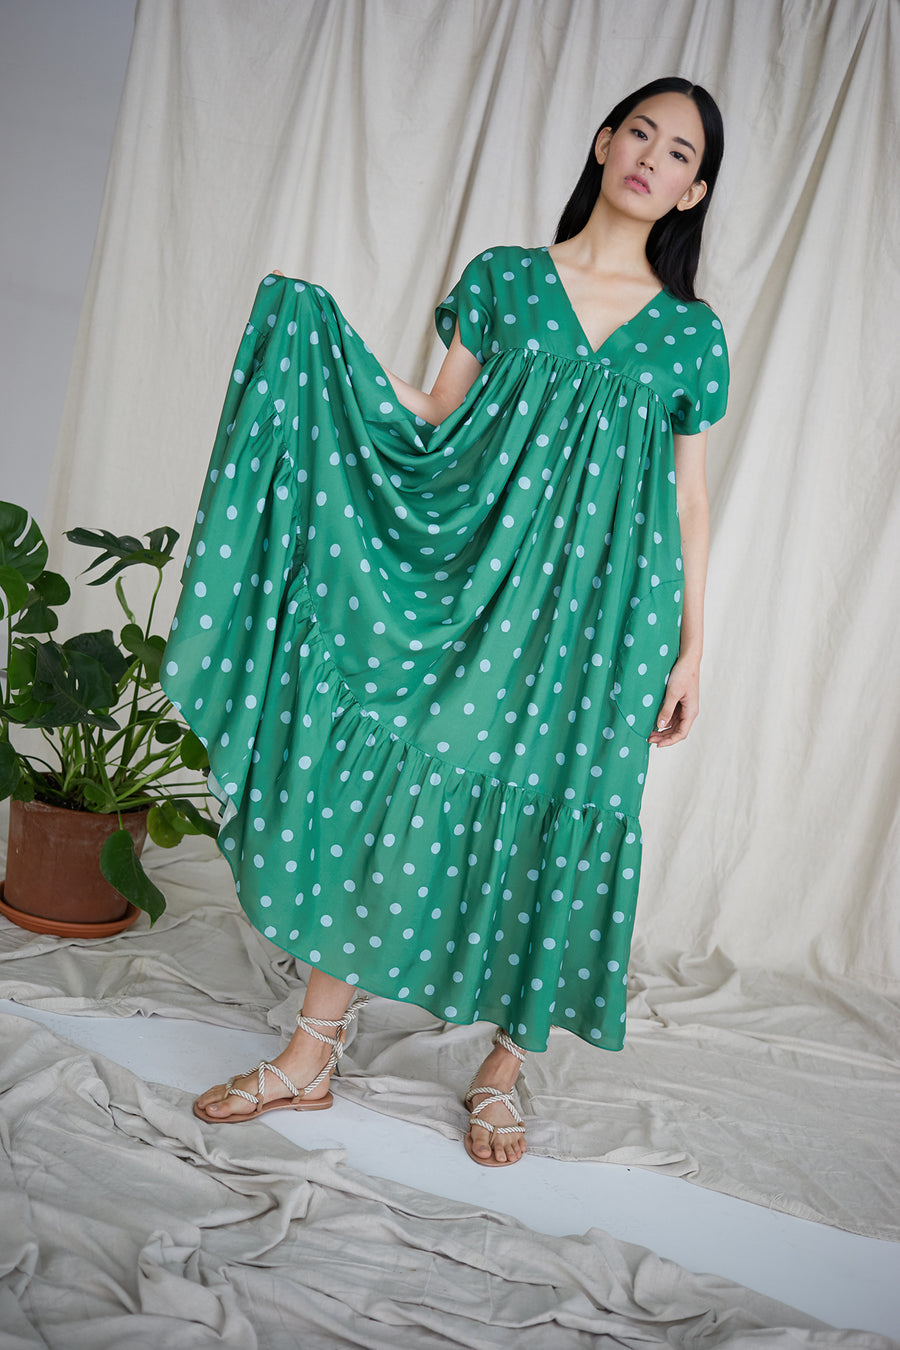 Gillian Dress in Green/Turquoise Polka Dots